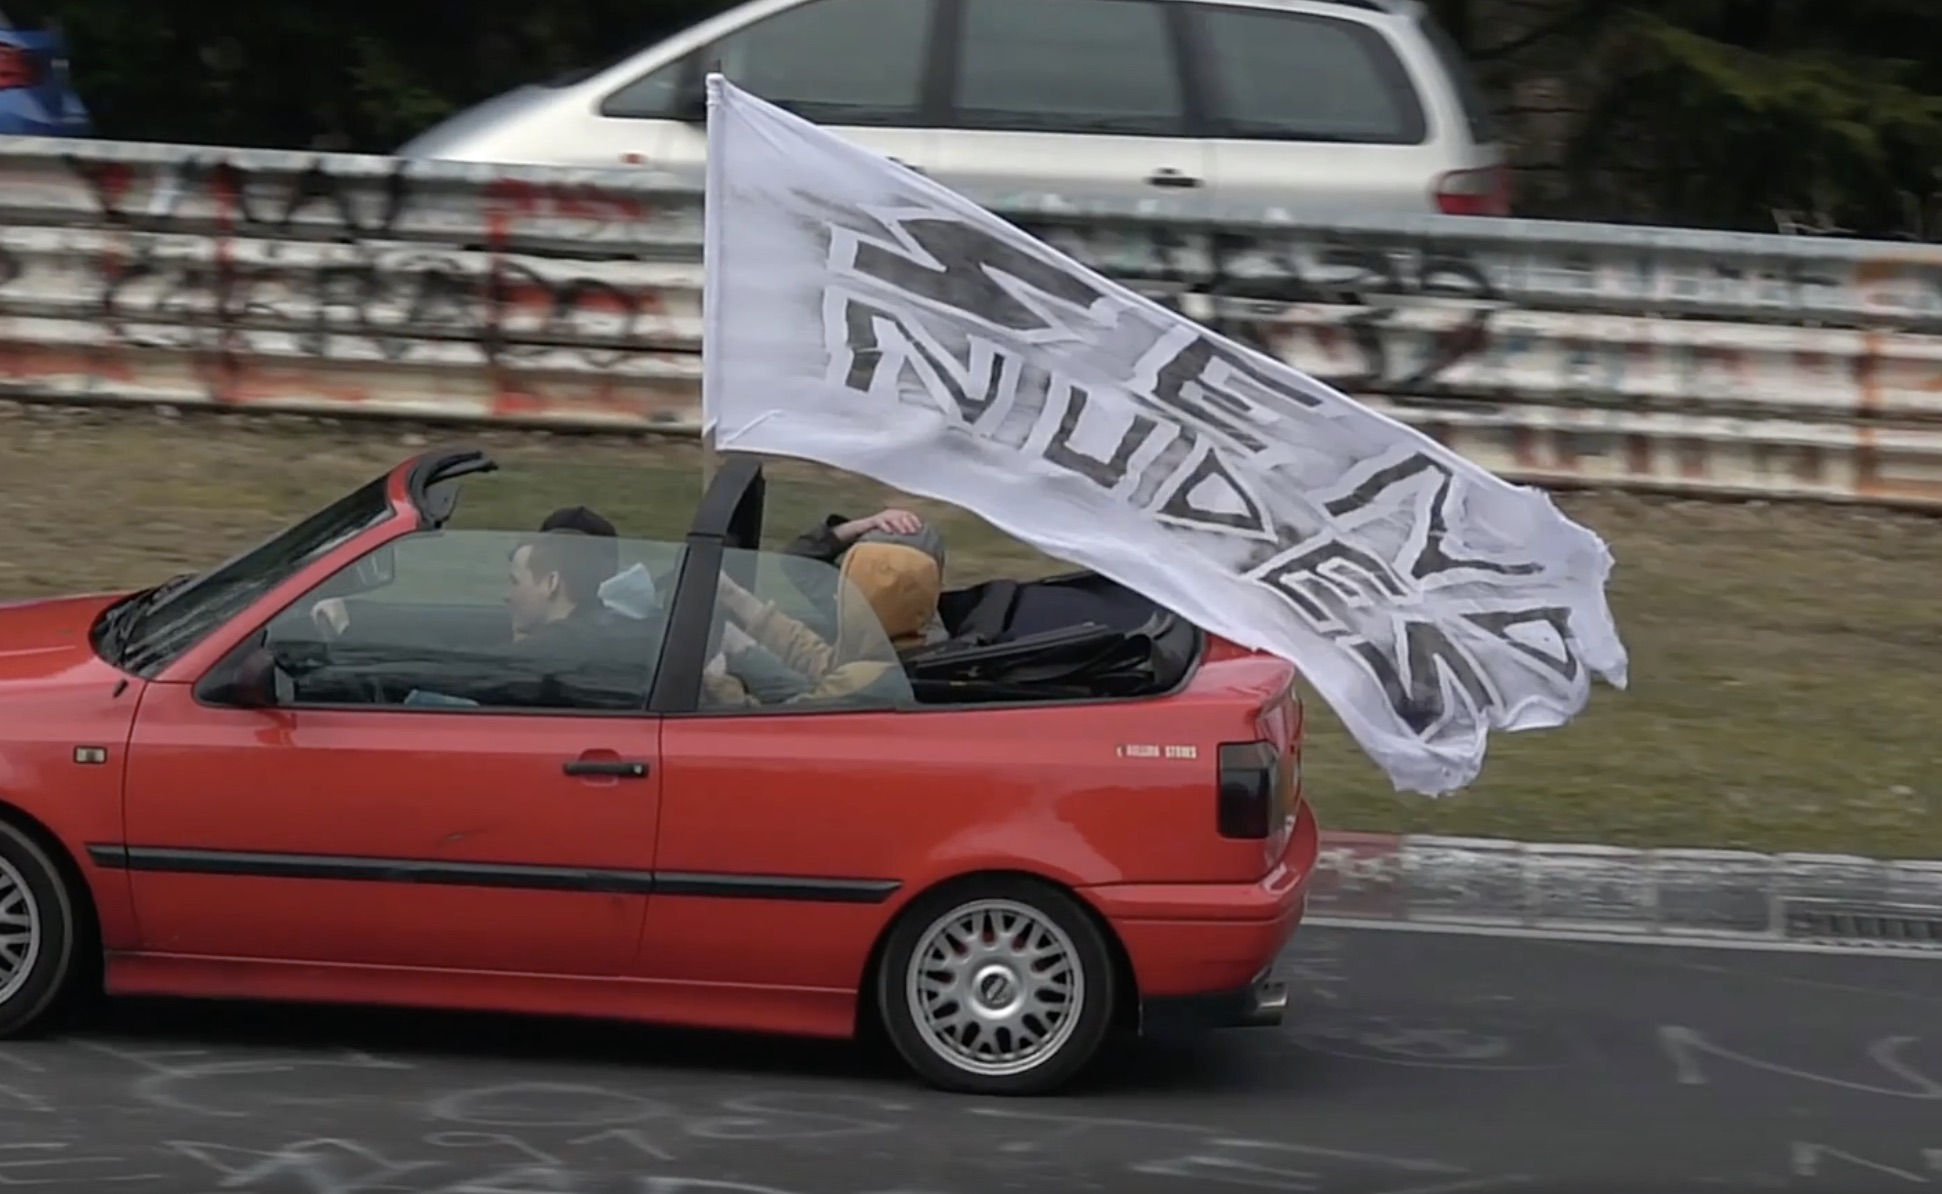 Unhinged: No Filming At The Nurburgring Without Pre-Approval – Bad For The Community?